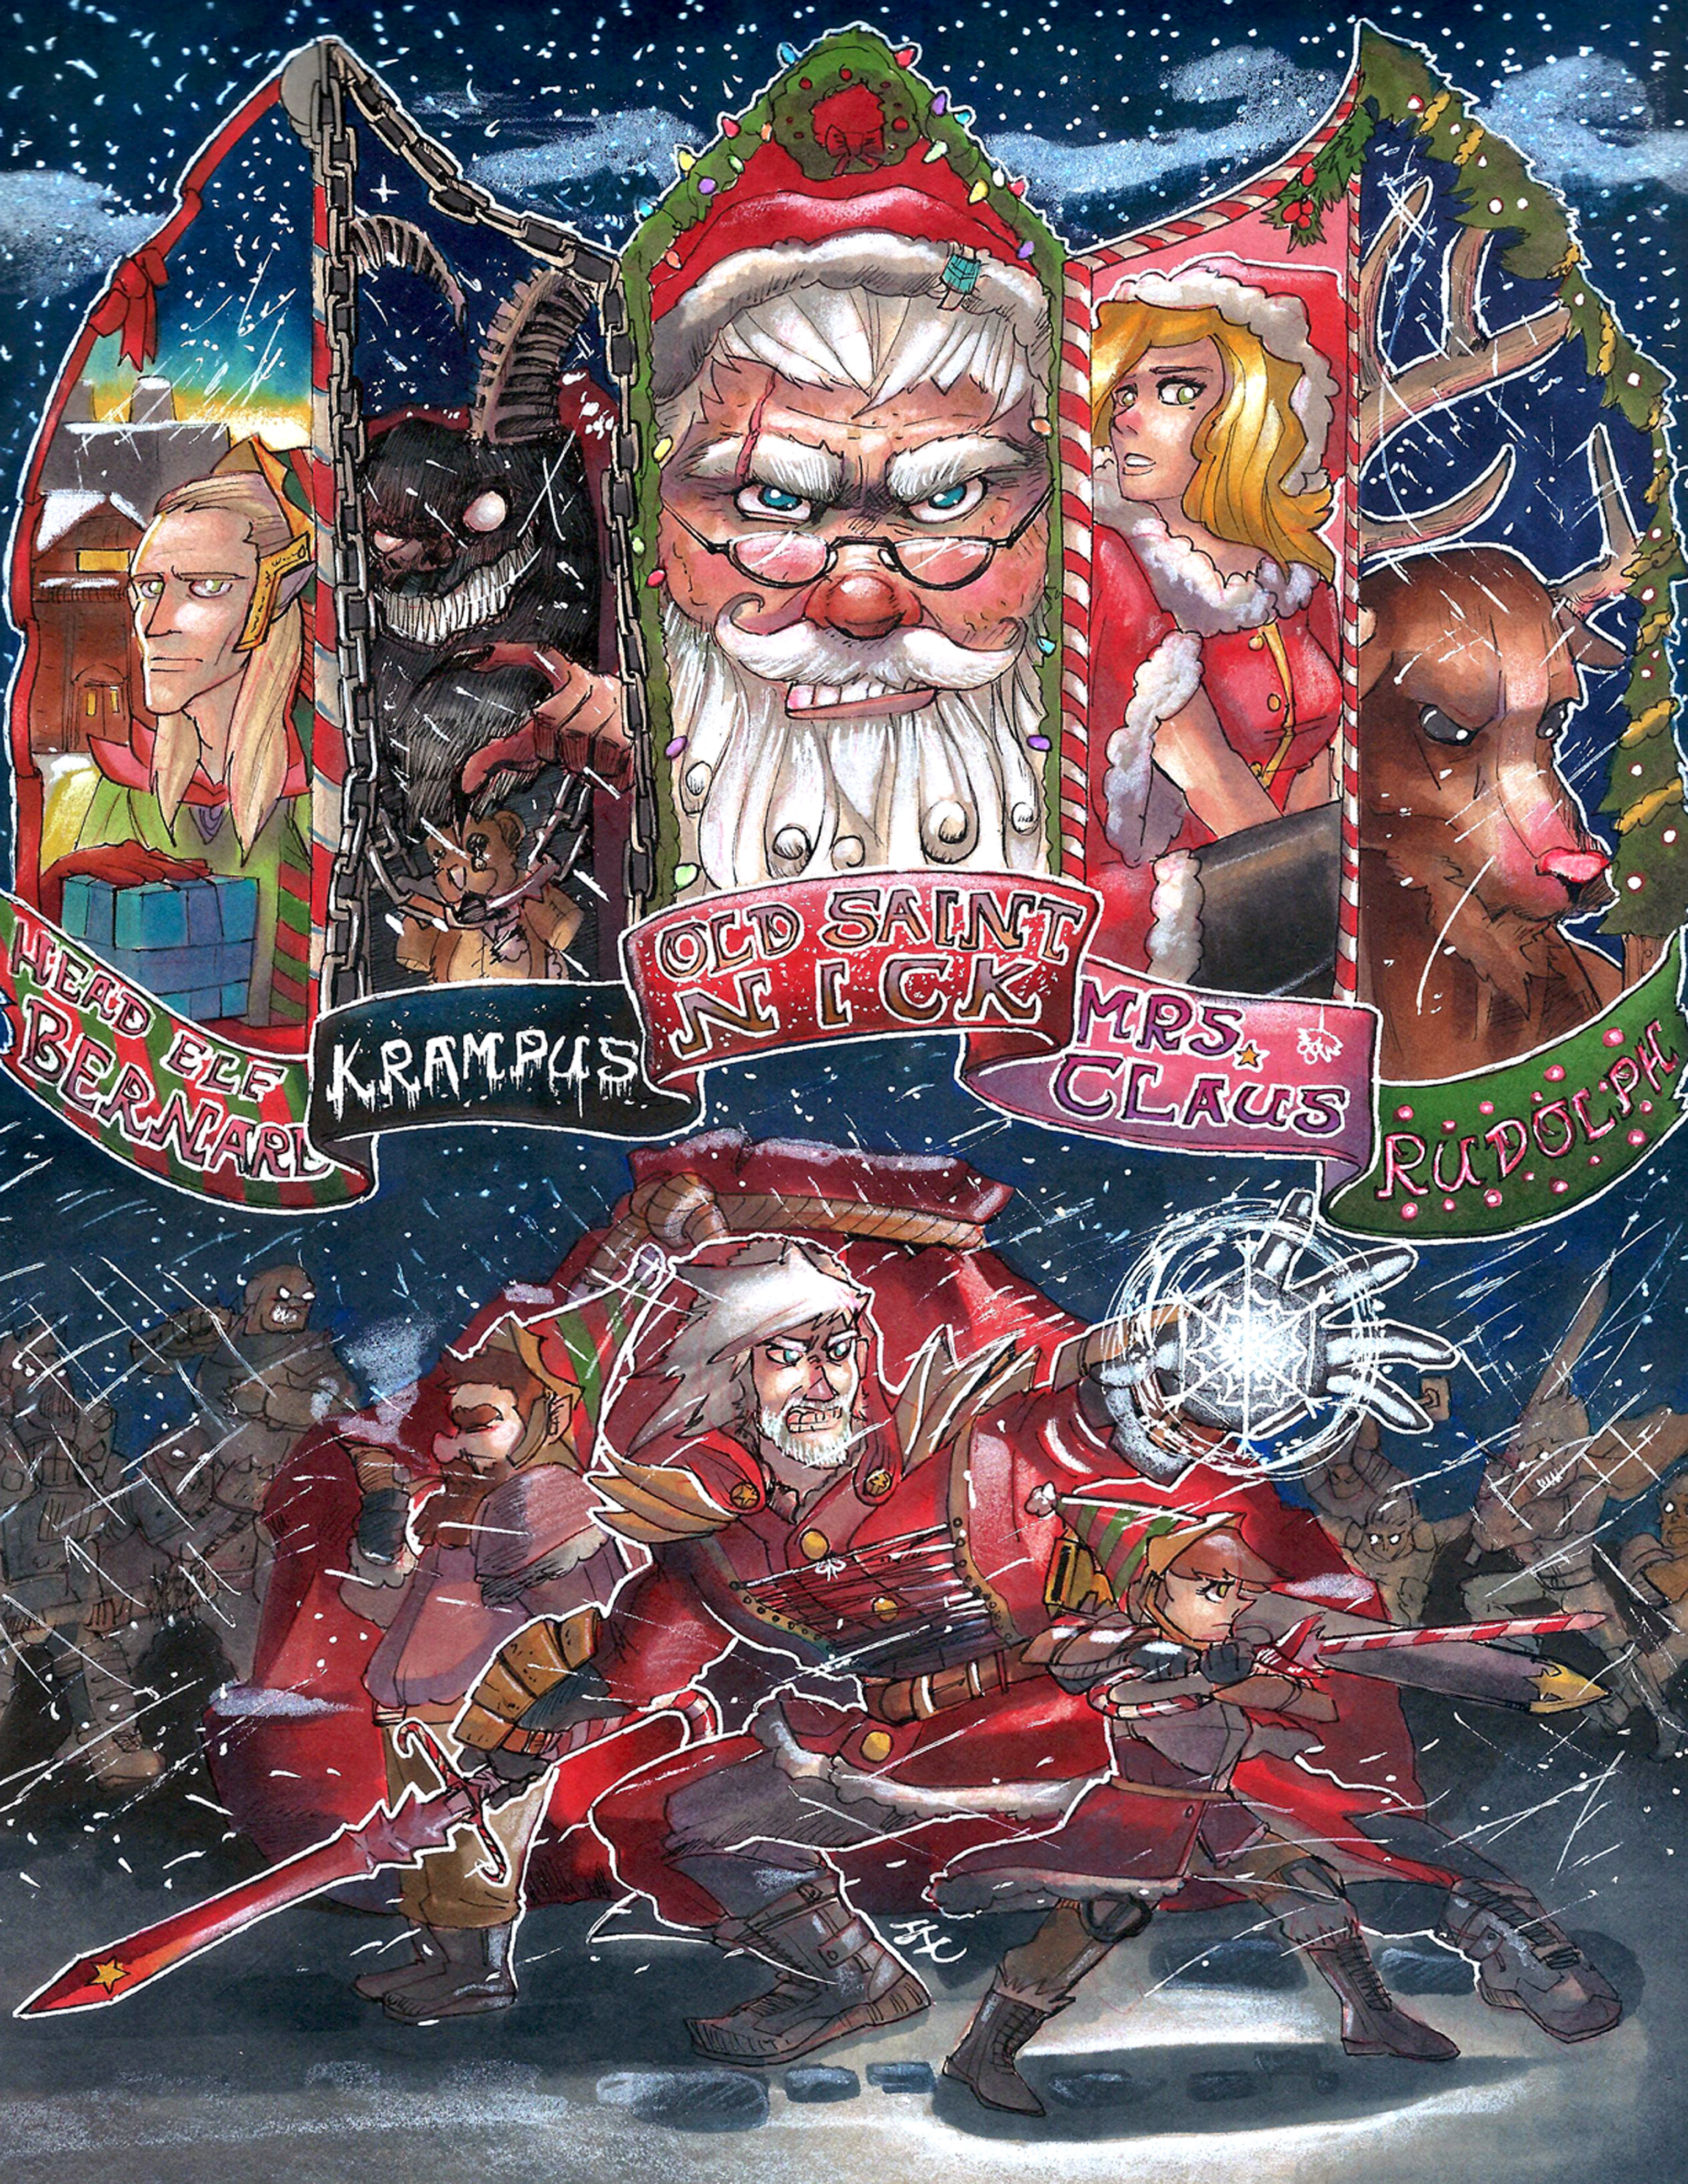 Journey to be The New Santa Claus